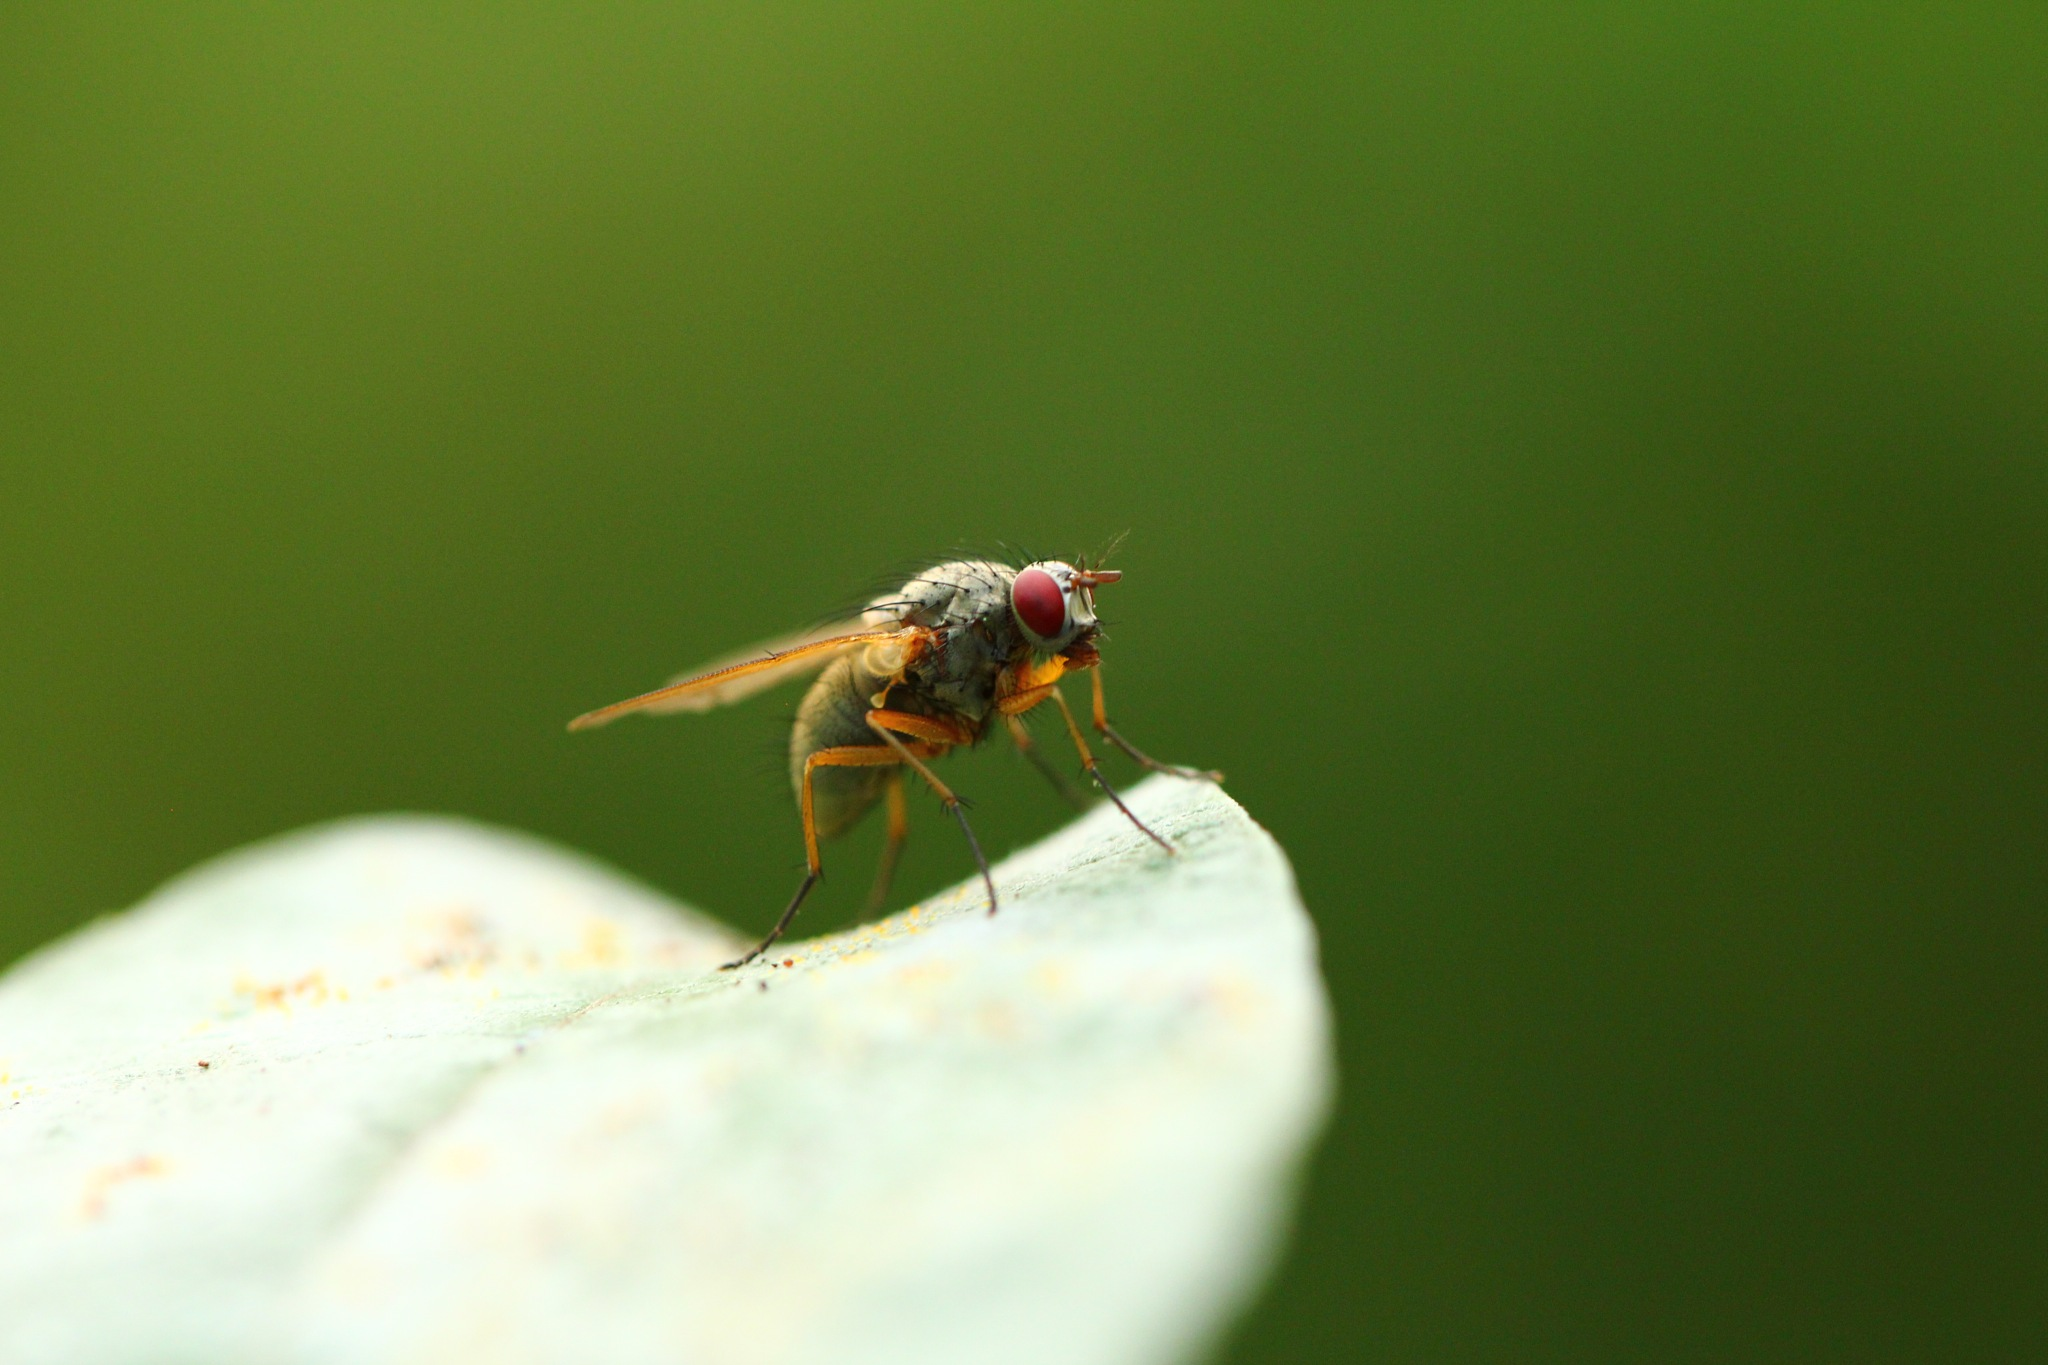 Fly by SofiesFoto